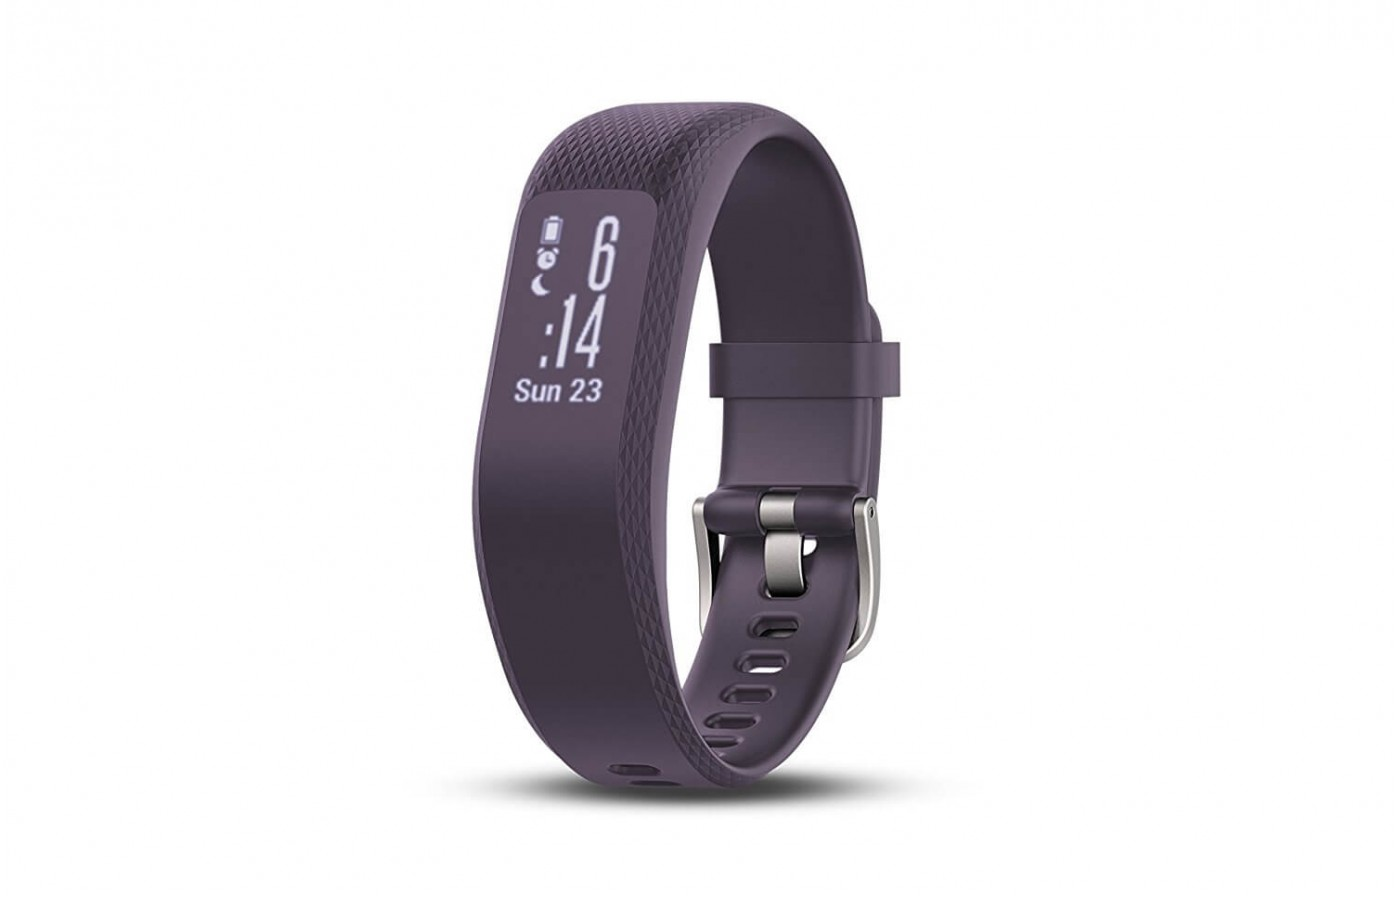 The Garmin Vivosmart 3 can track stress levels using heart rate variability